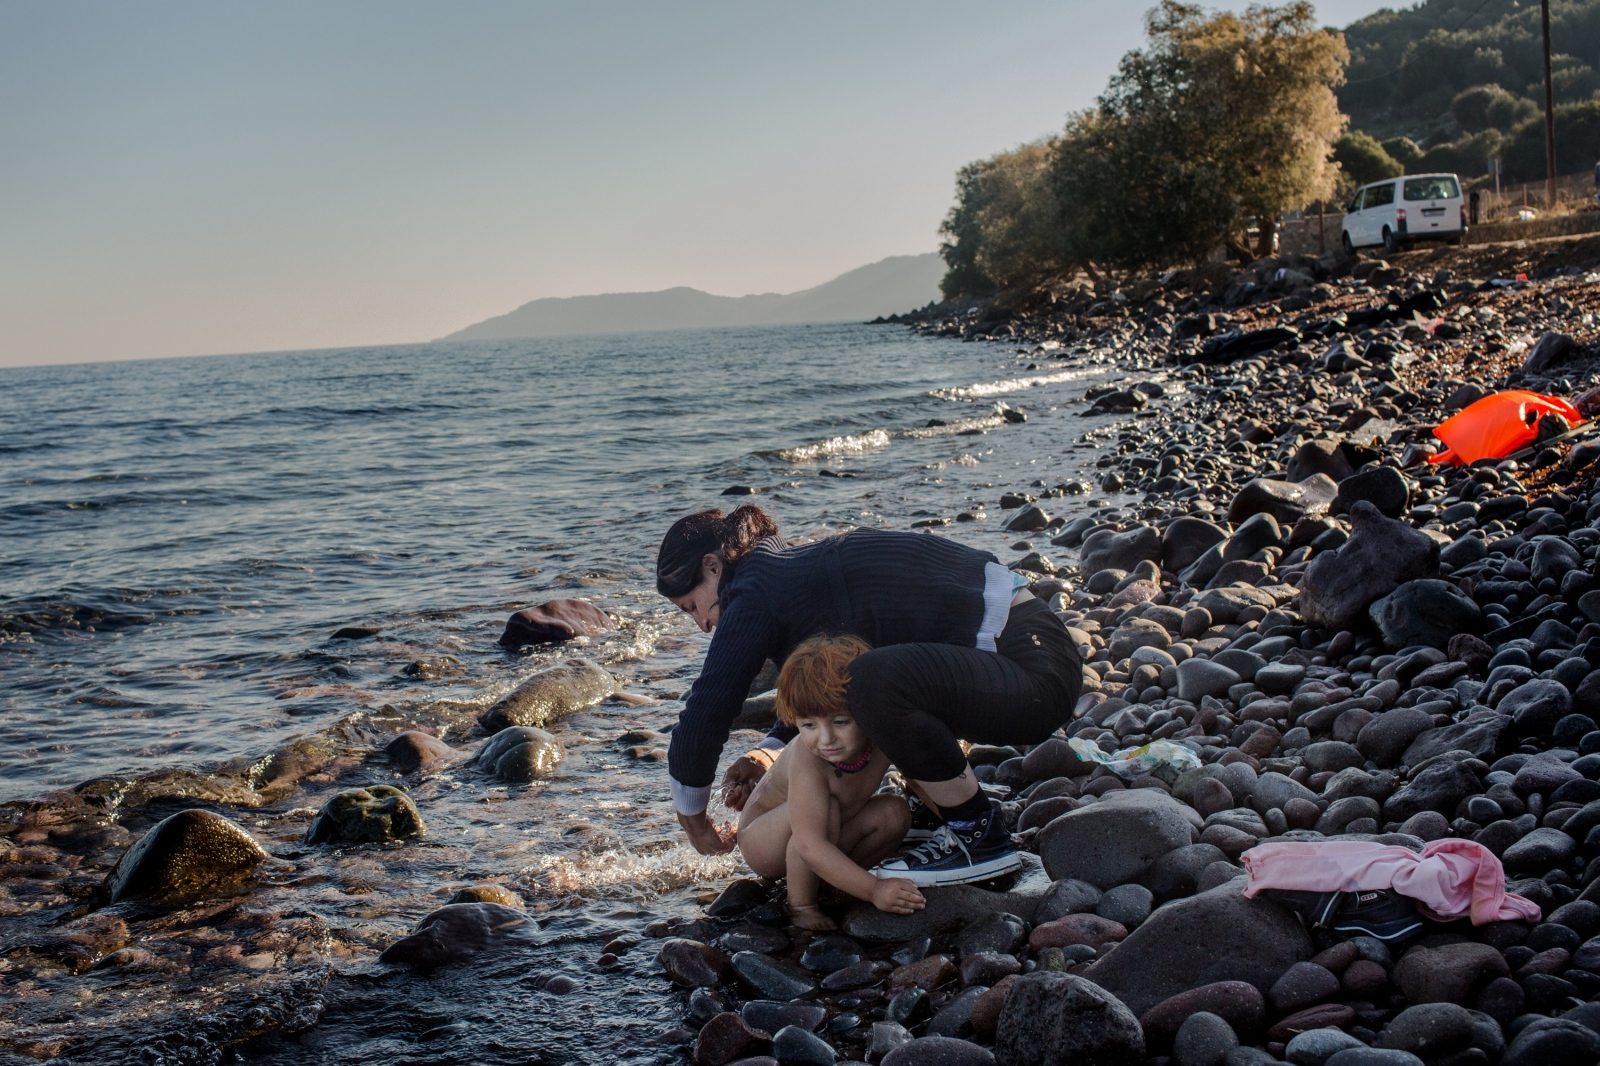 A Yazidi refugee washes her daughter in the sea shortly after arriving on Lesbos, Greece, on November 13, 2015. After a long journey, the toddler was badly in need of a wash and clean diapers.